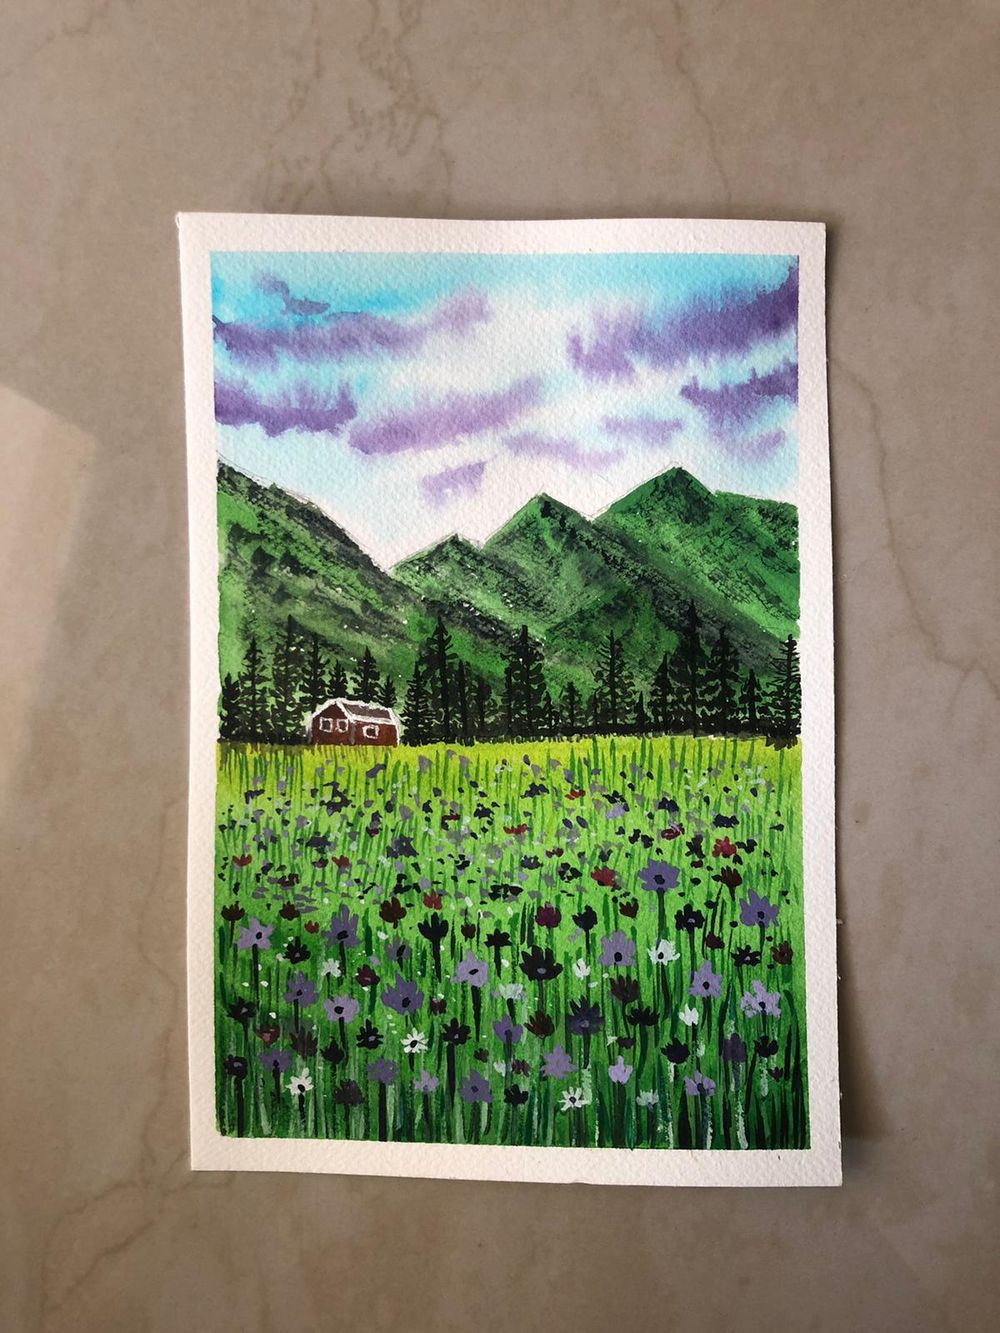 floral meadows with watercolor - image 2 - student project